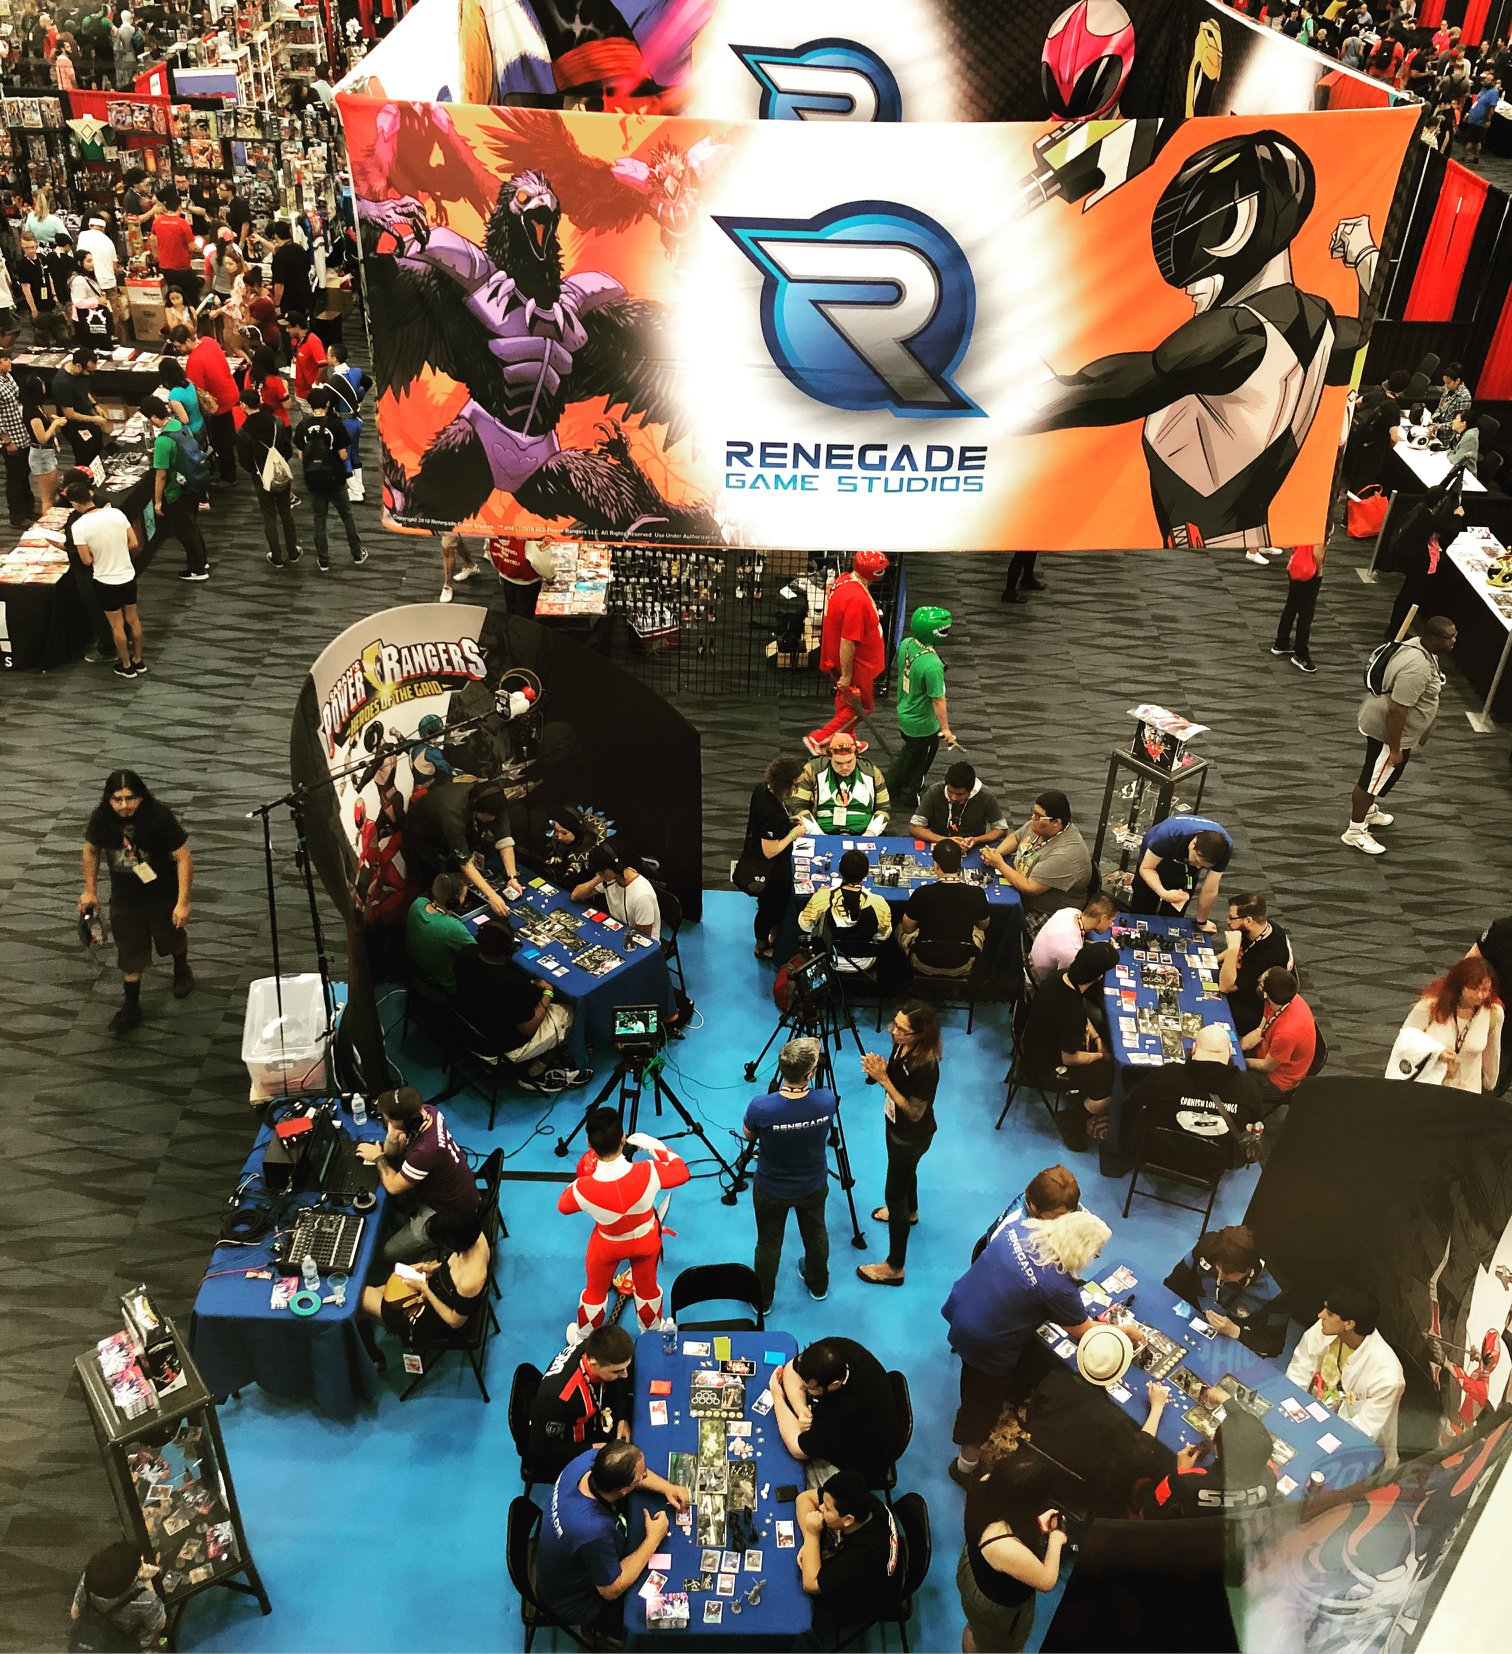 Eagle-eye view of the booth!